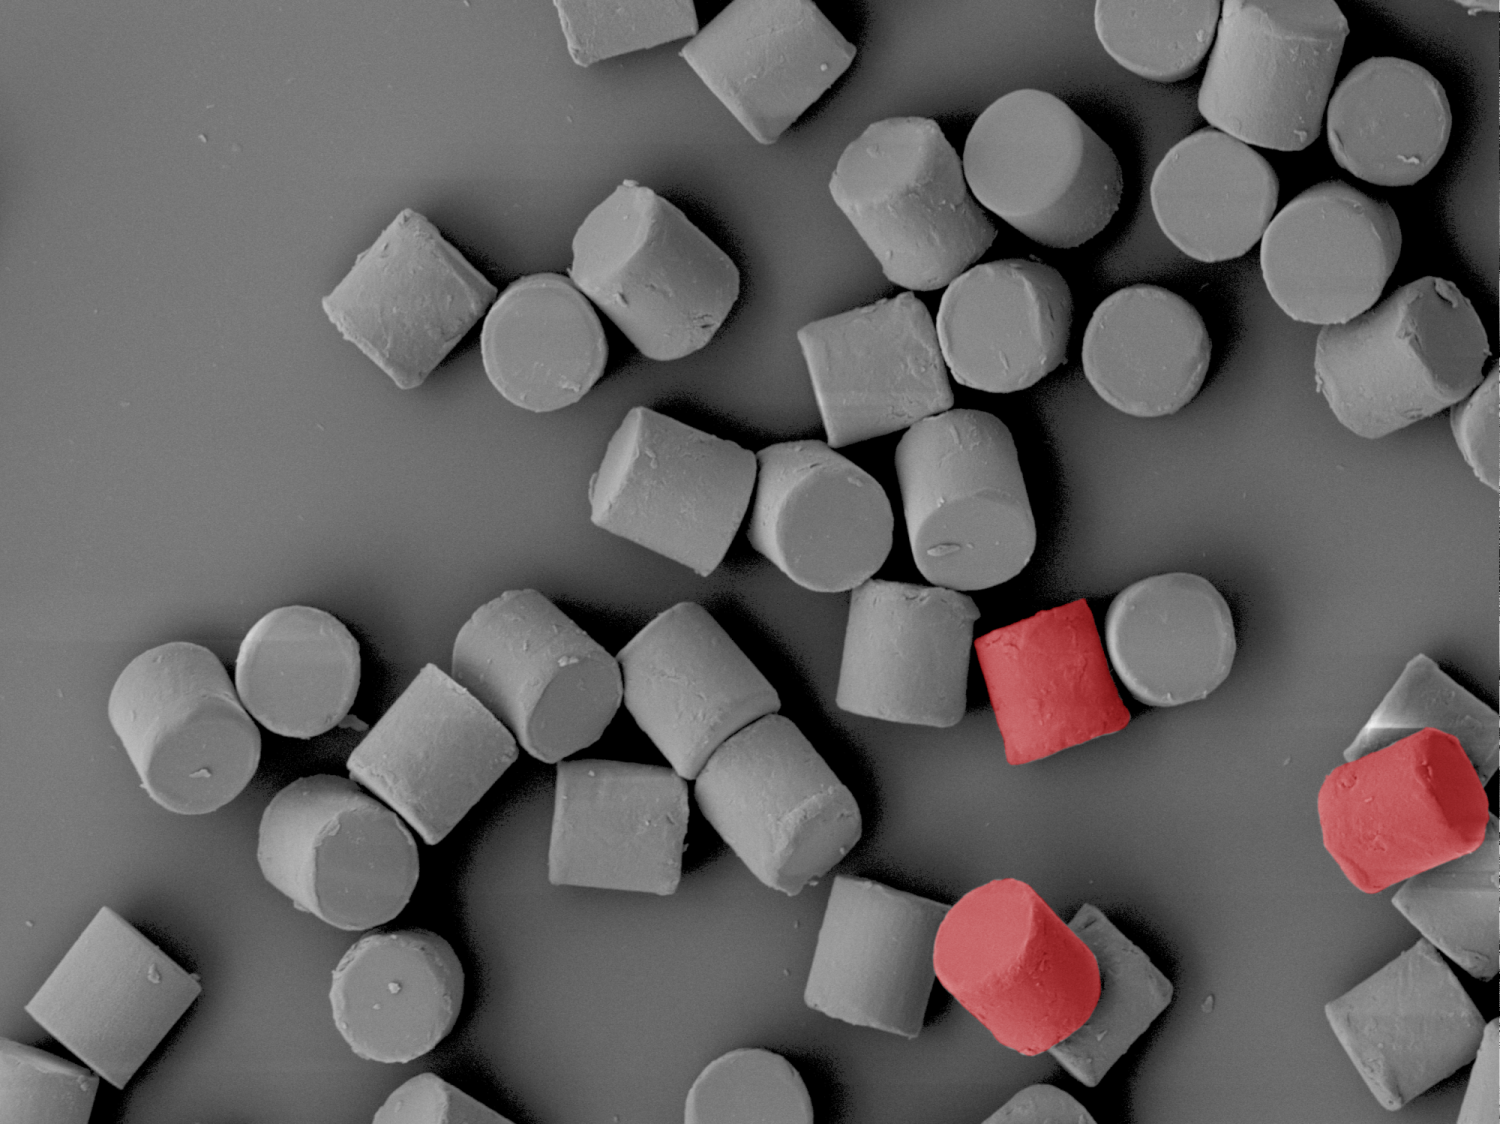 Nanoscale image of cylindrical cells, with three in the bottom right corner being colored red